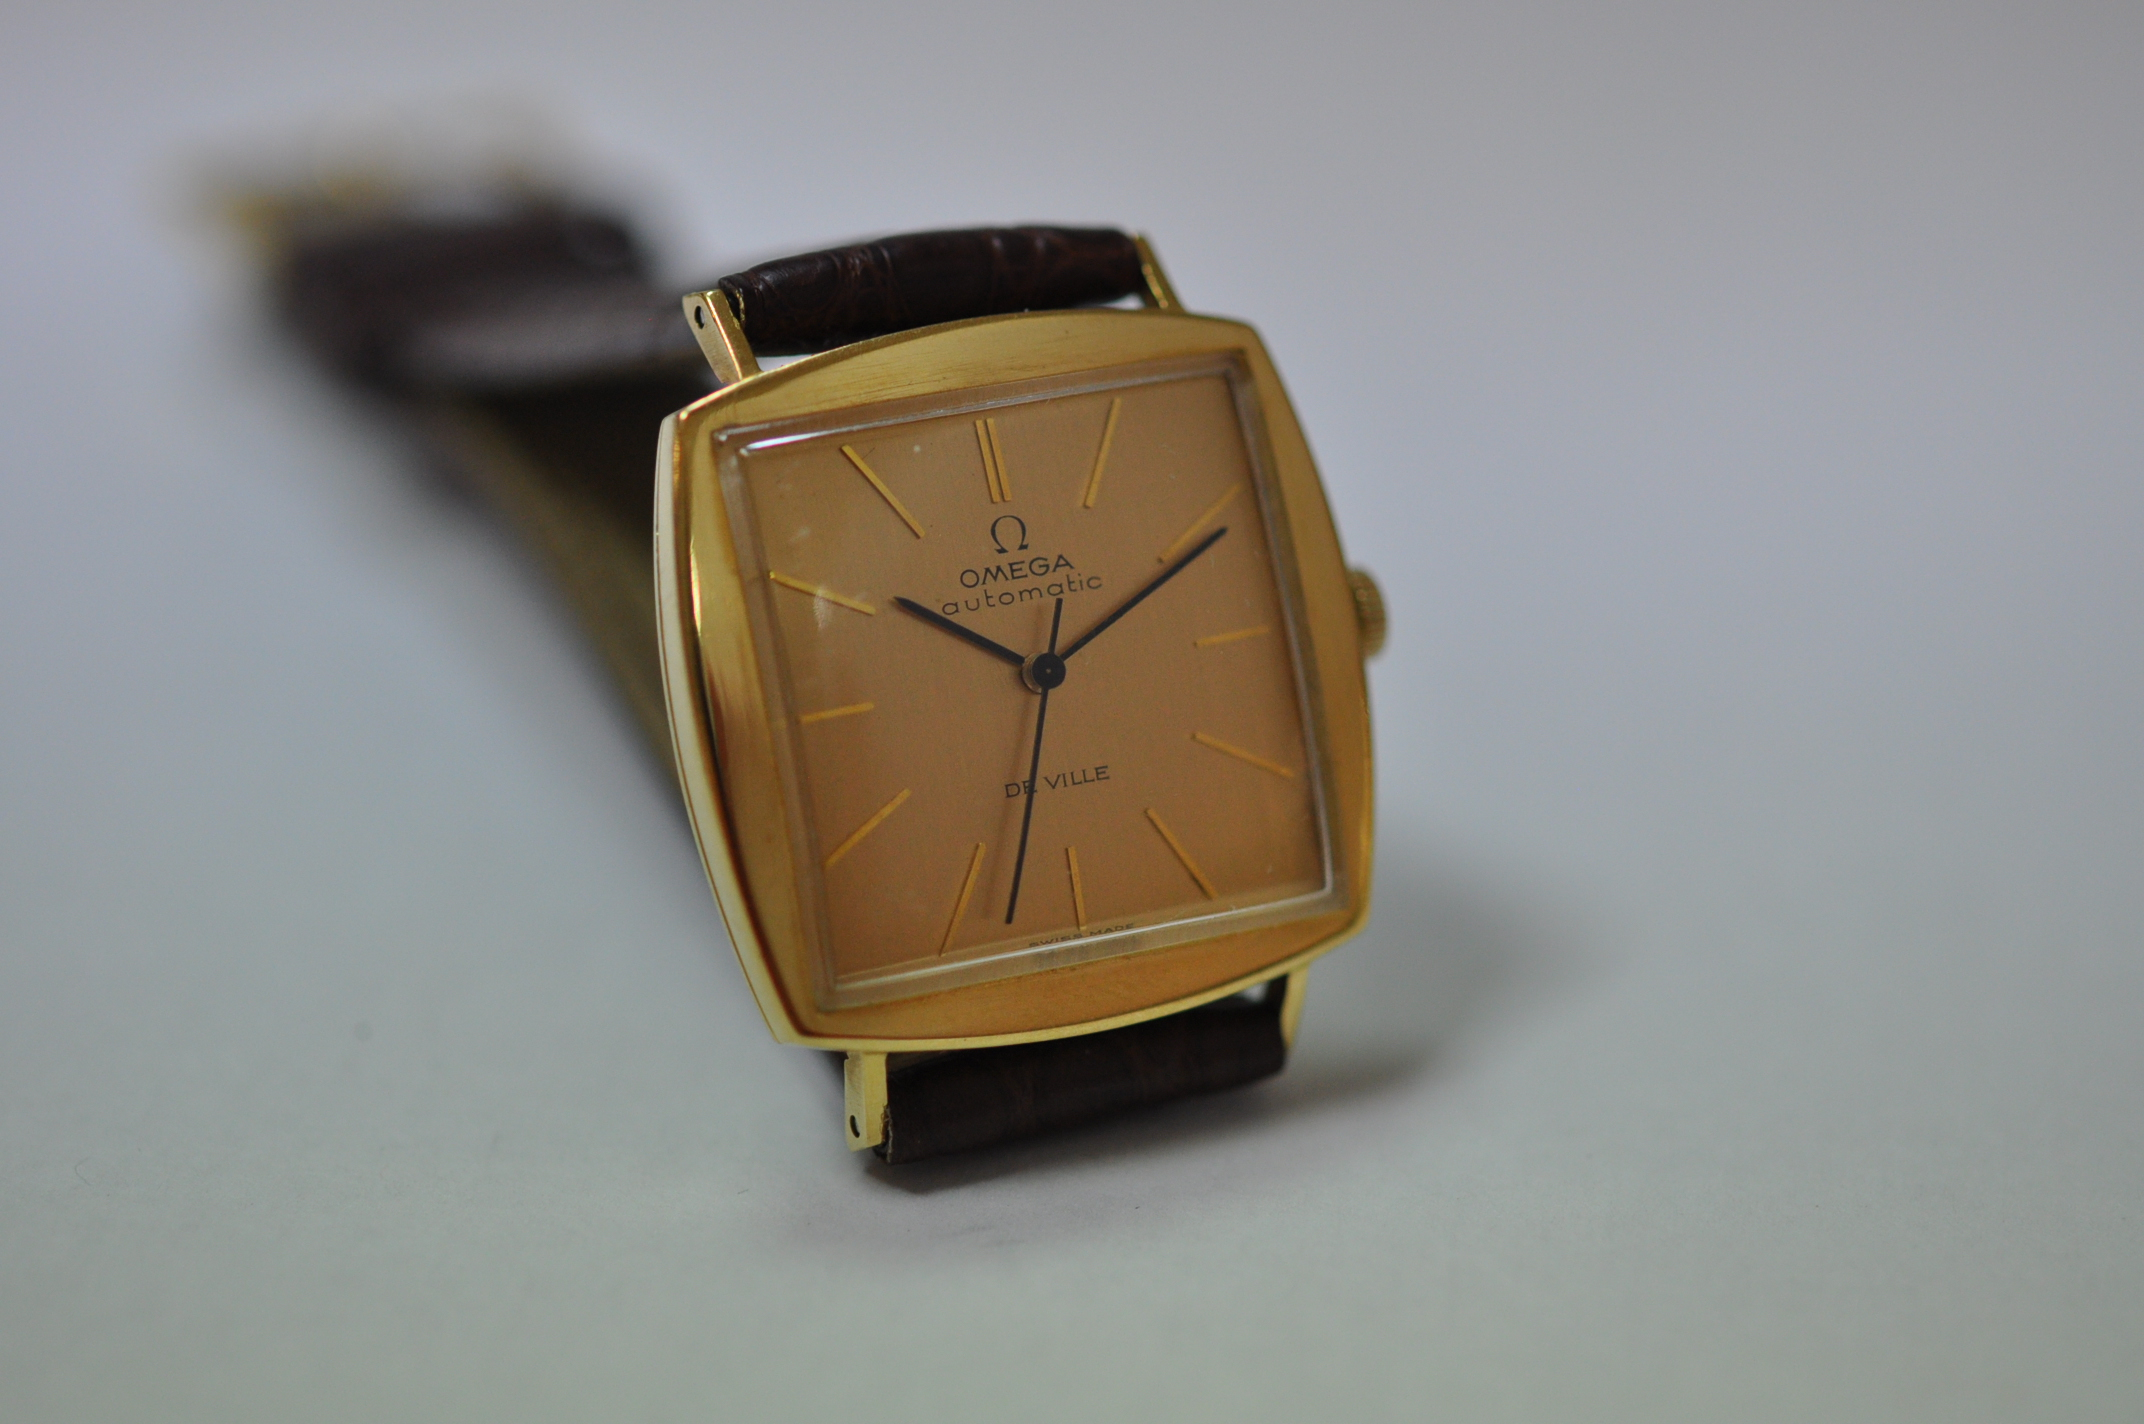 1966 18ct gold DeVille automatic